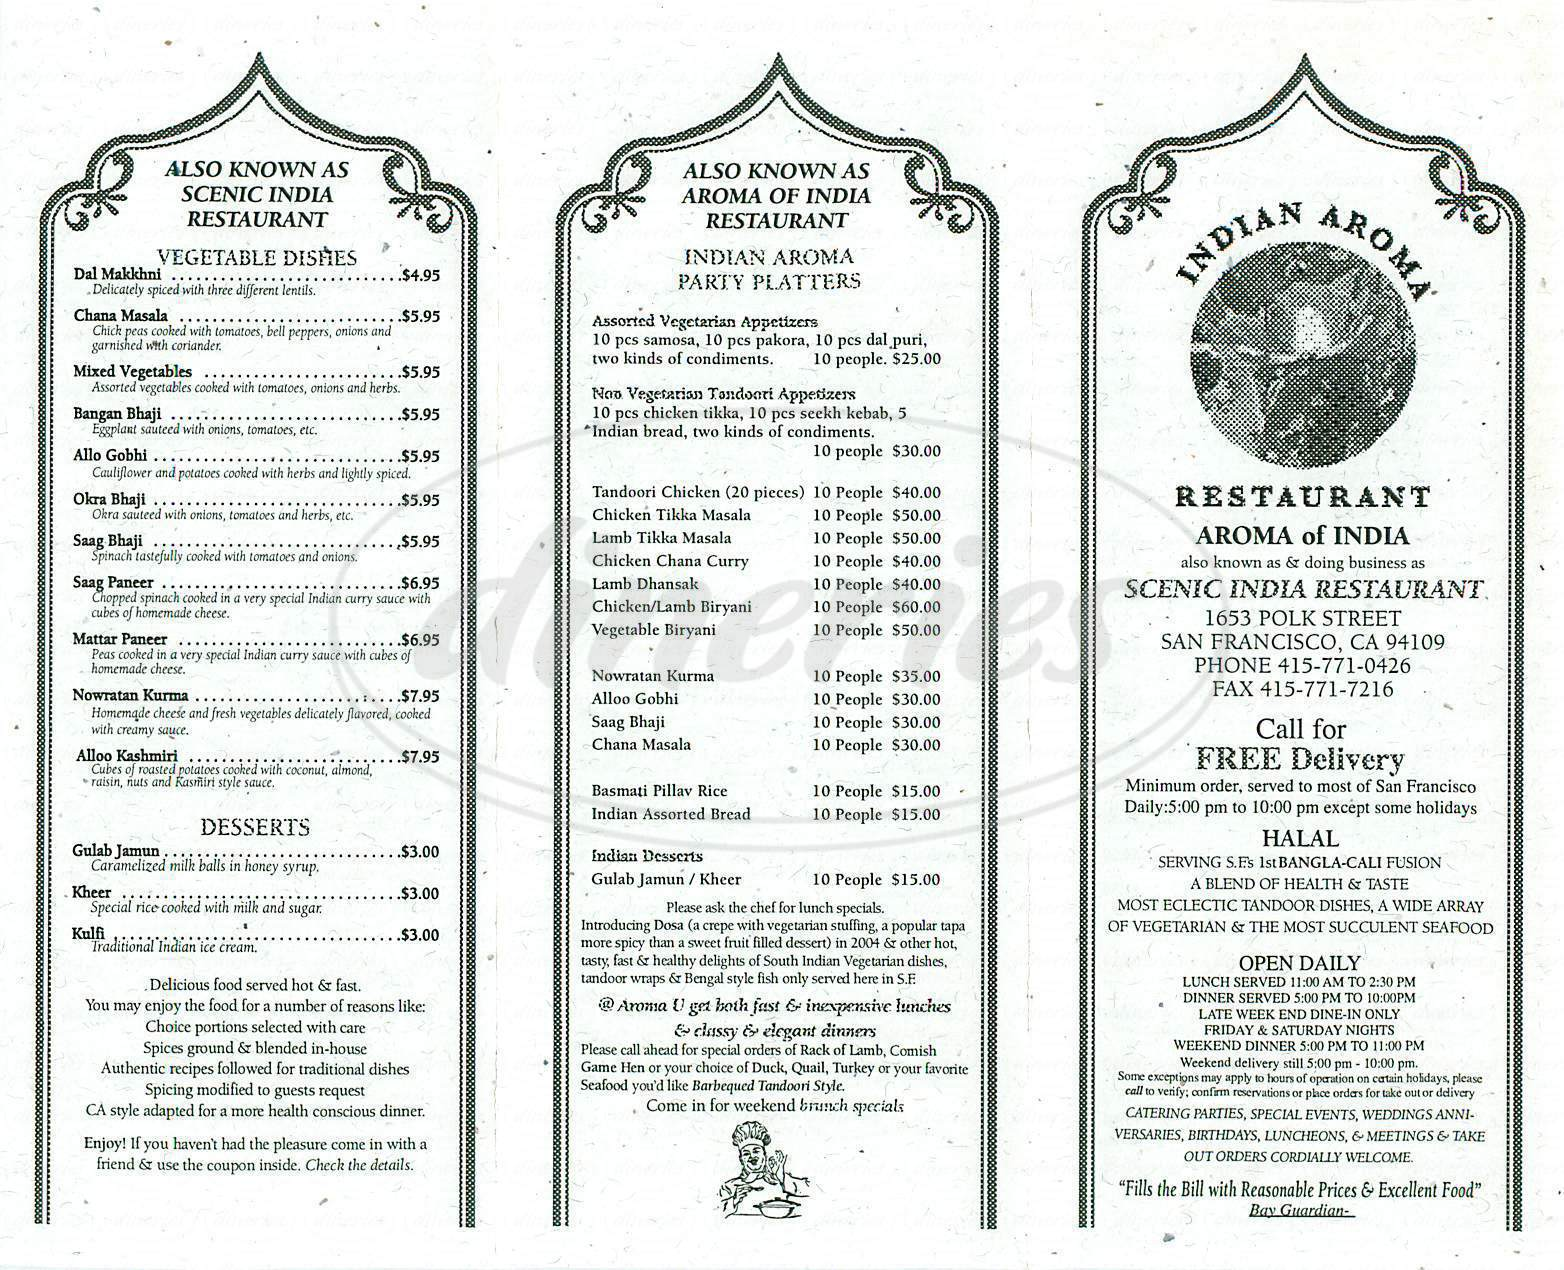 menu for Indian Aroma